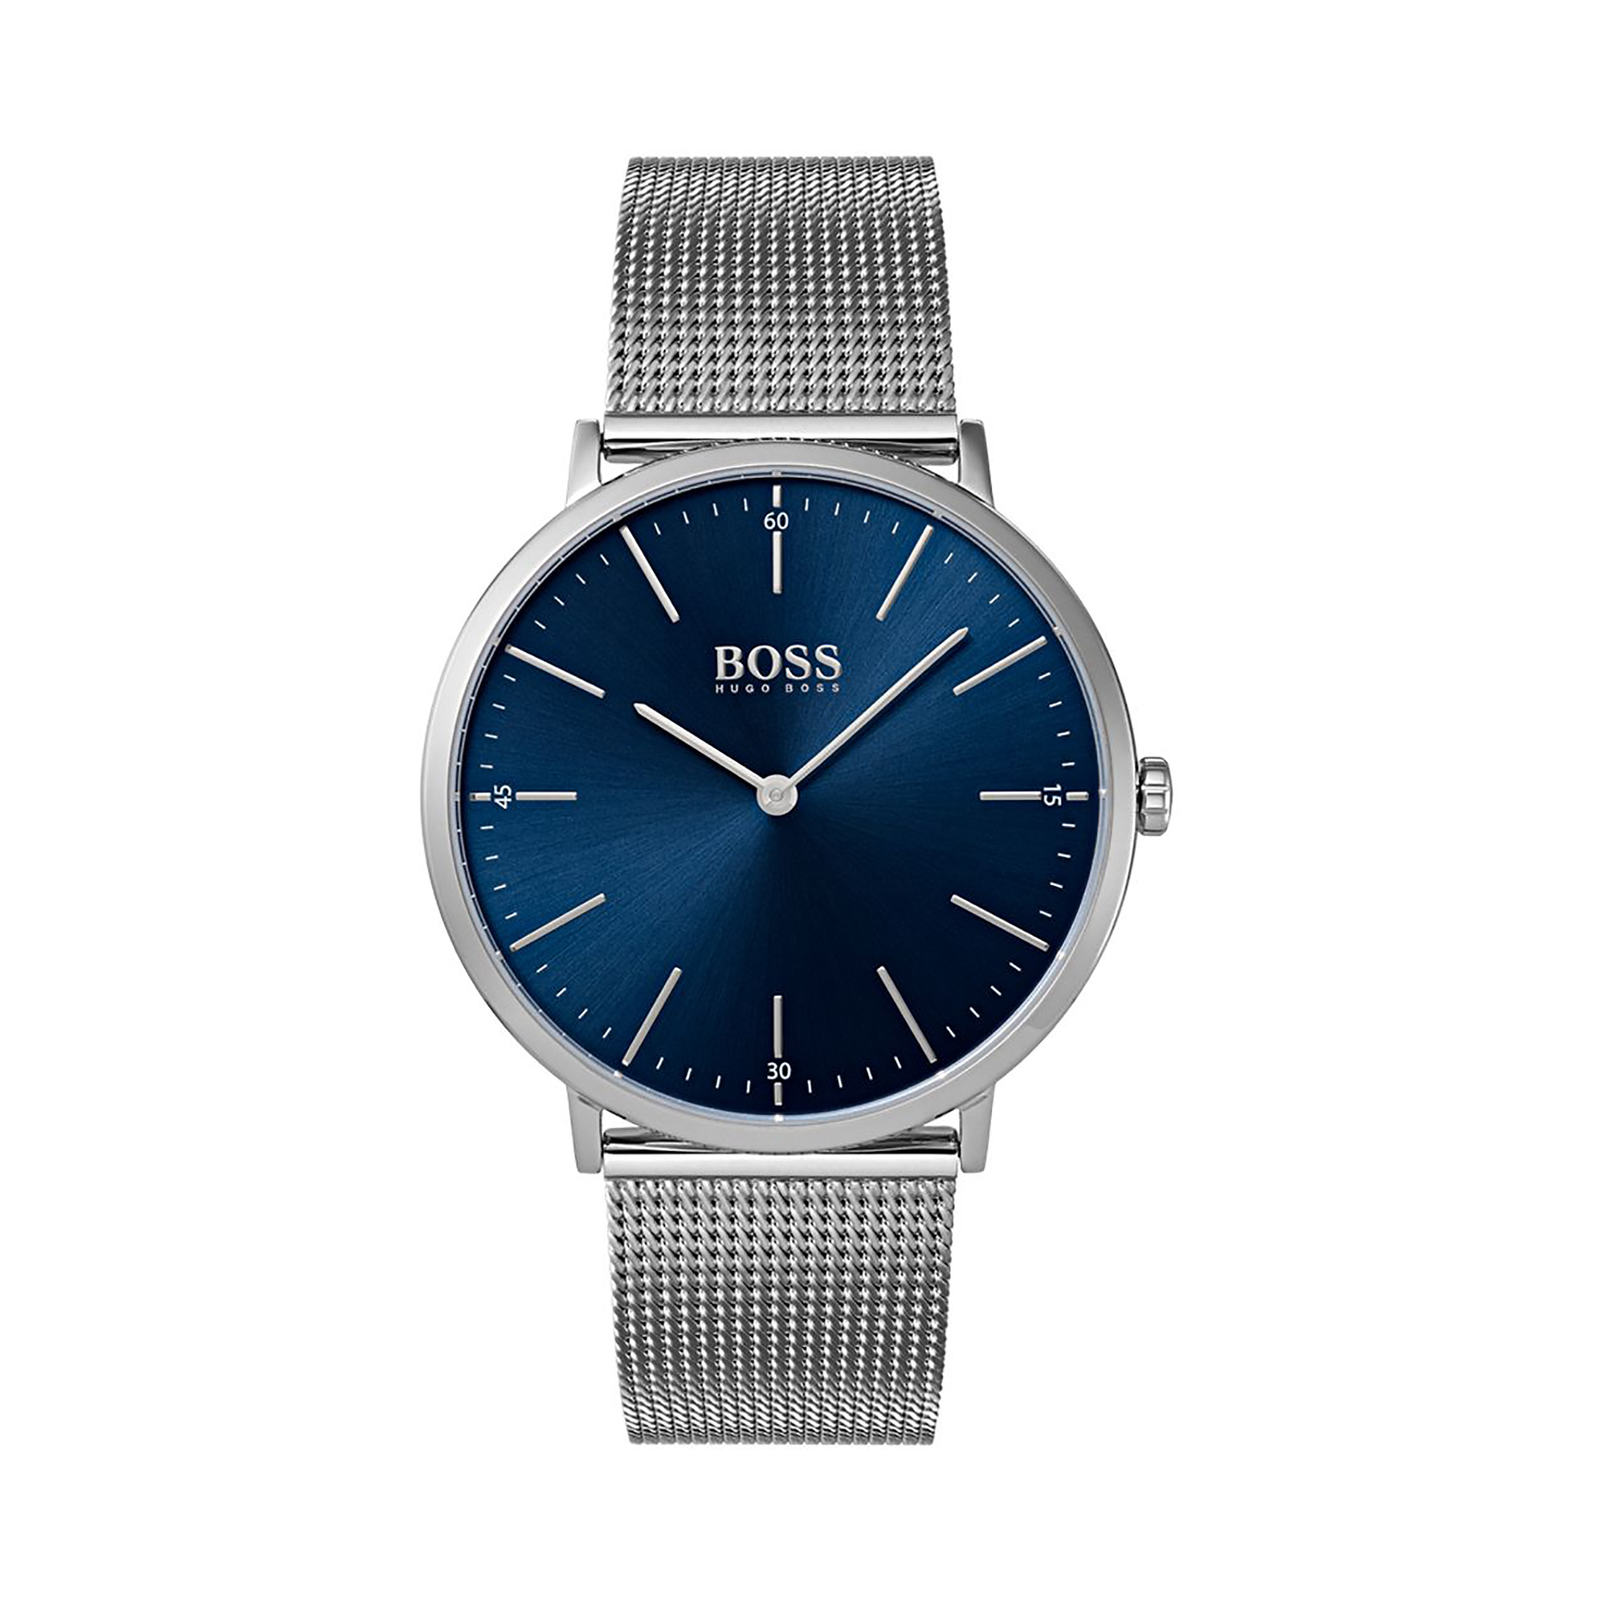 Hugo Boss Horizon Men's Watch - Exclusive